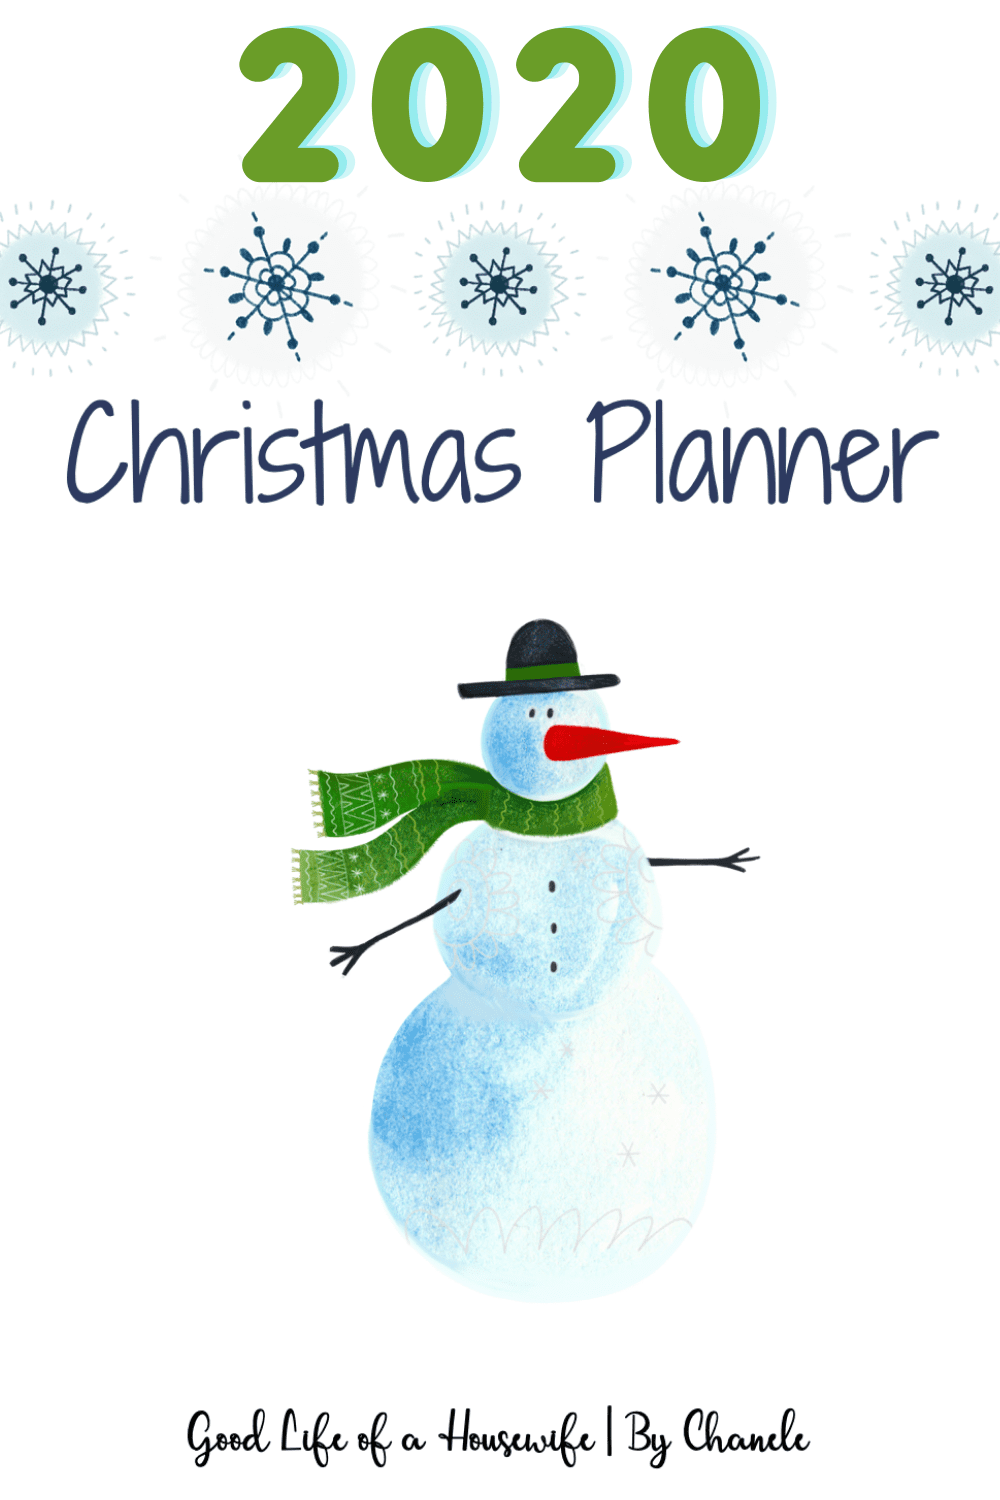 Free Printable Christmas Printables 2020 2020 Christmas planner [free printable] – Good Life of a Housewife